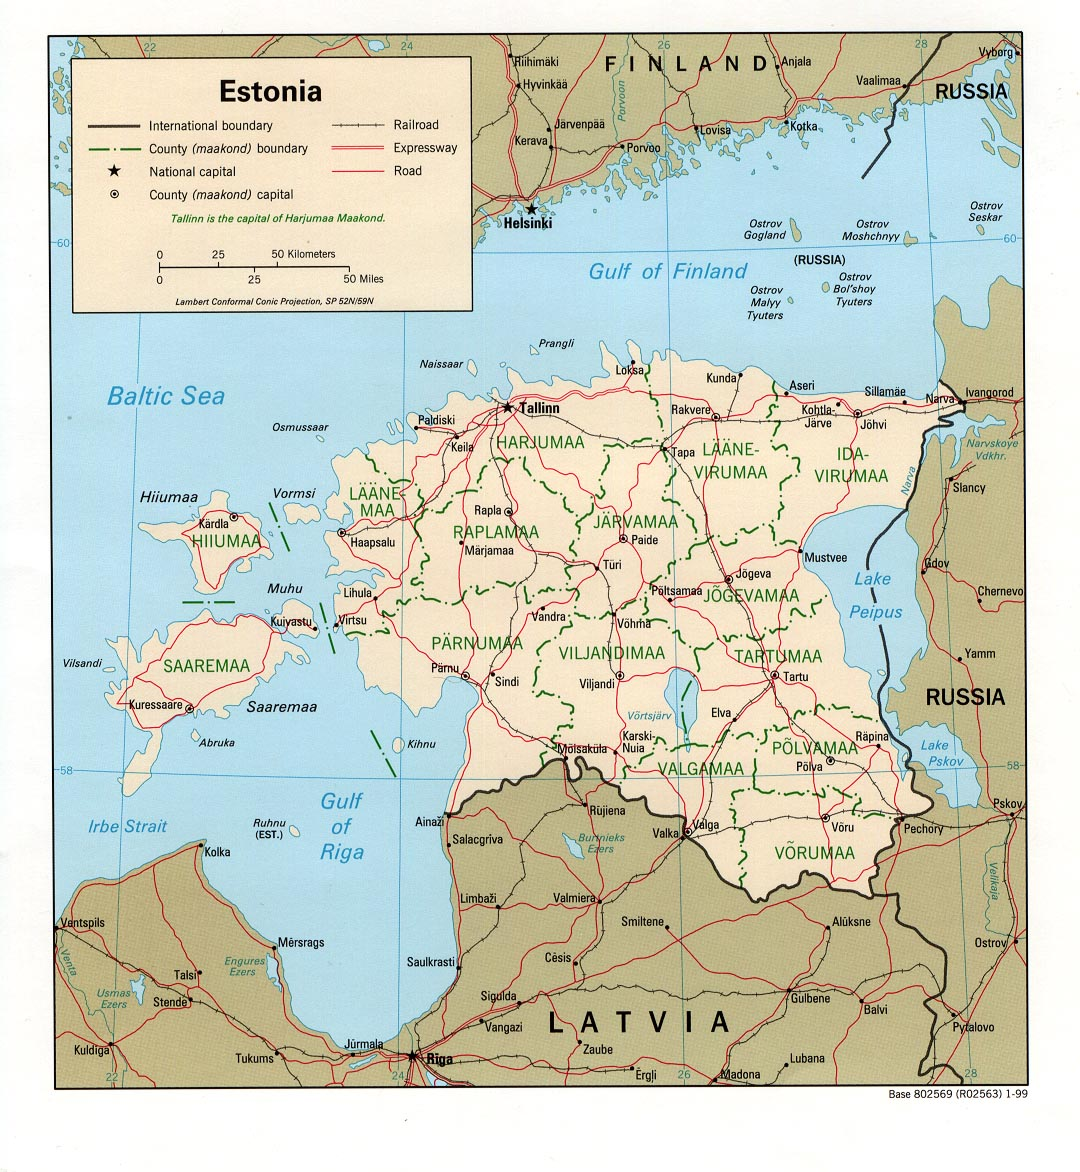 Map Of Estonia , Estonia [Political Map] 1999 (299K)